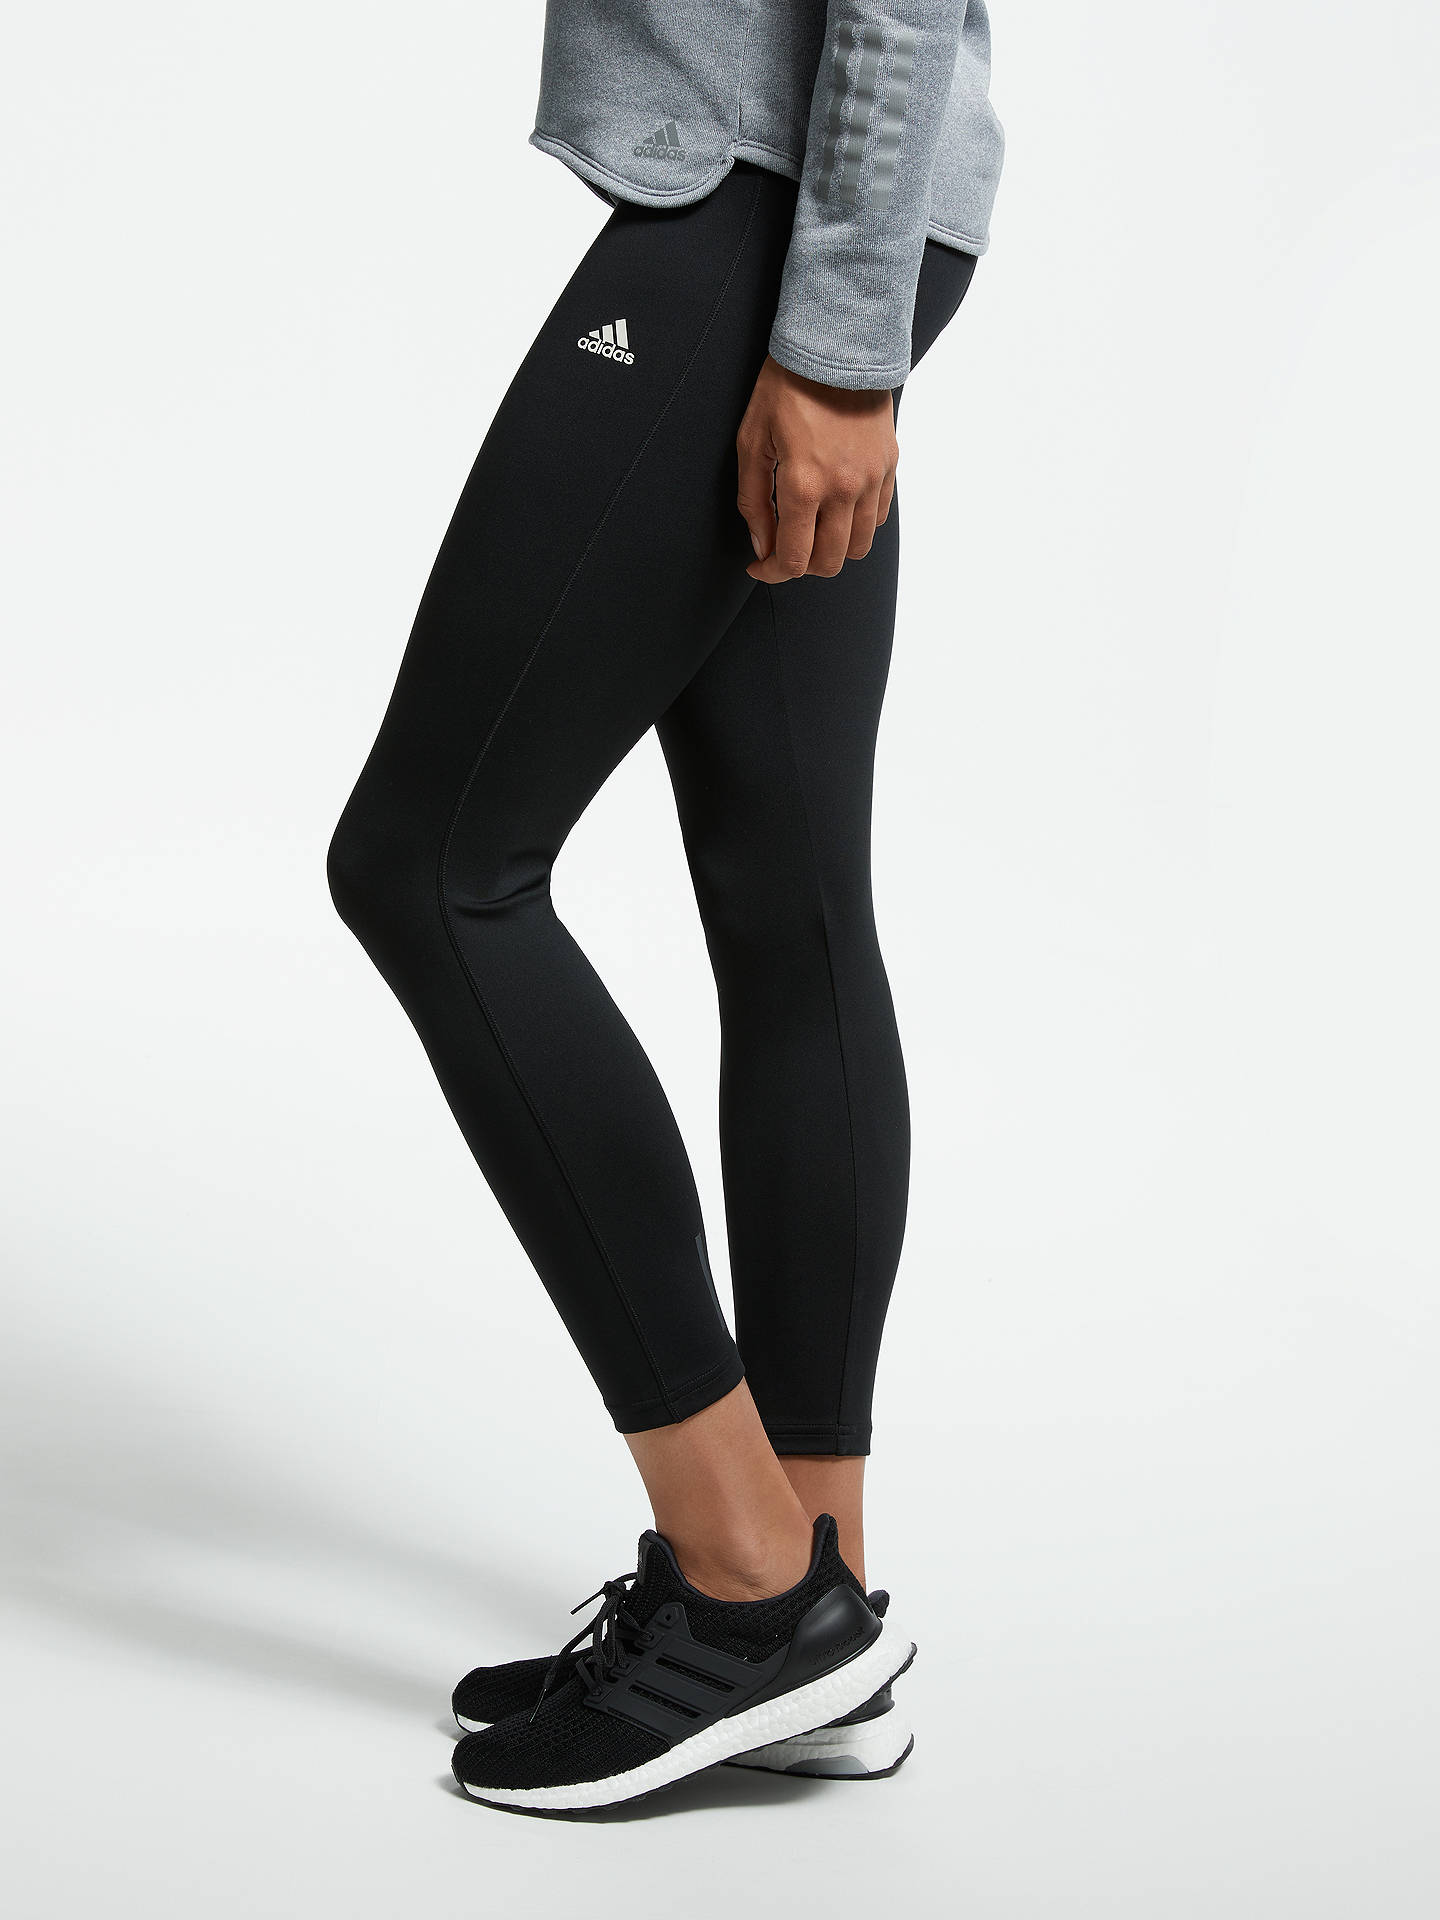 adidas leggings climalite